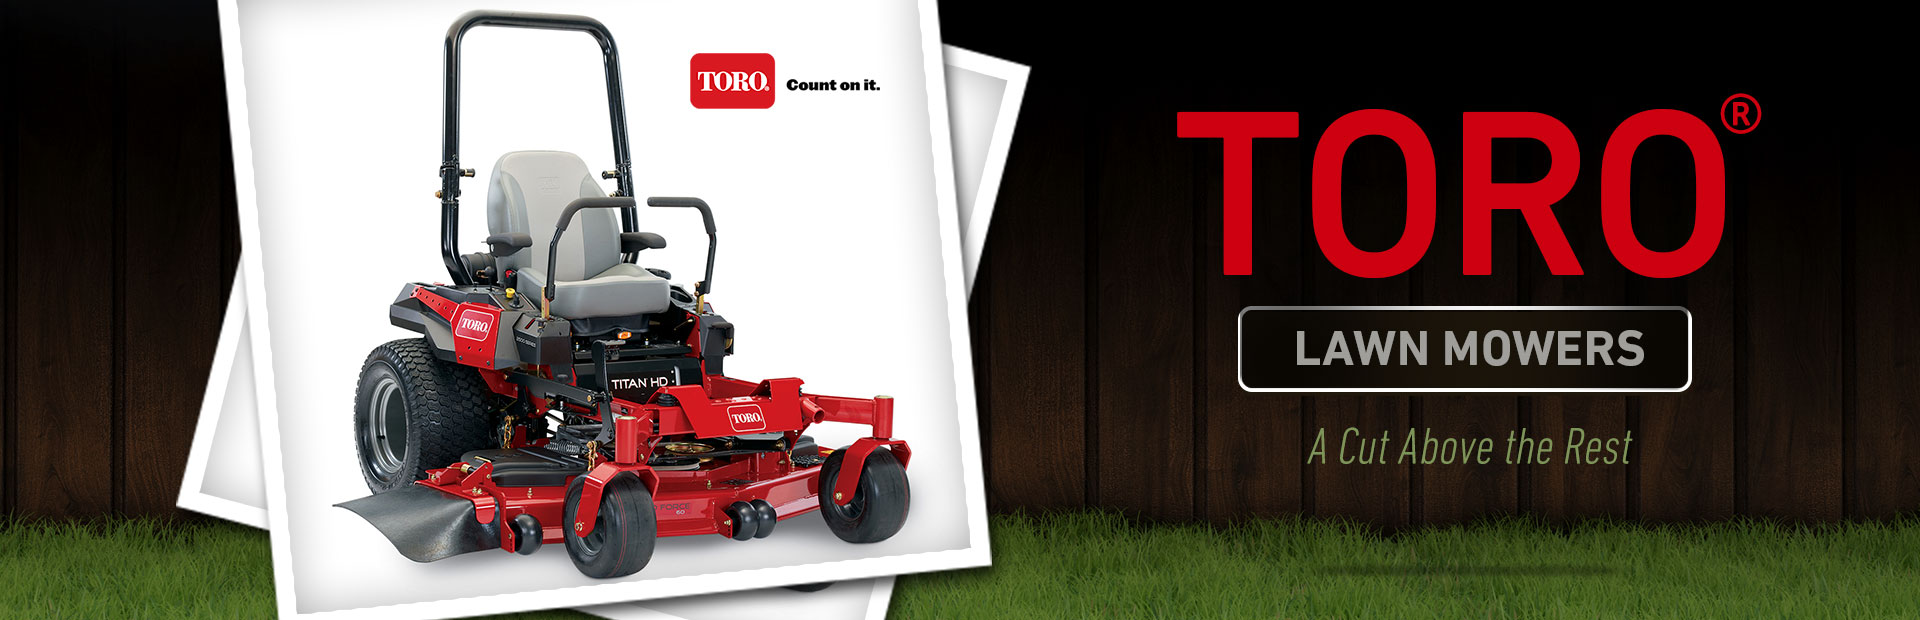 Toro Lawn Mowers: Click here to view the models.